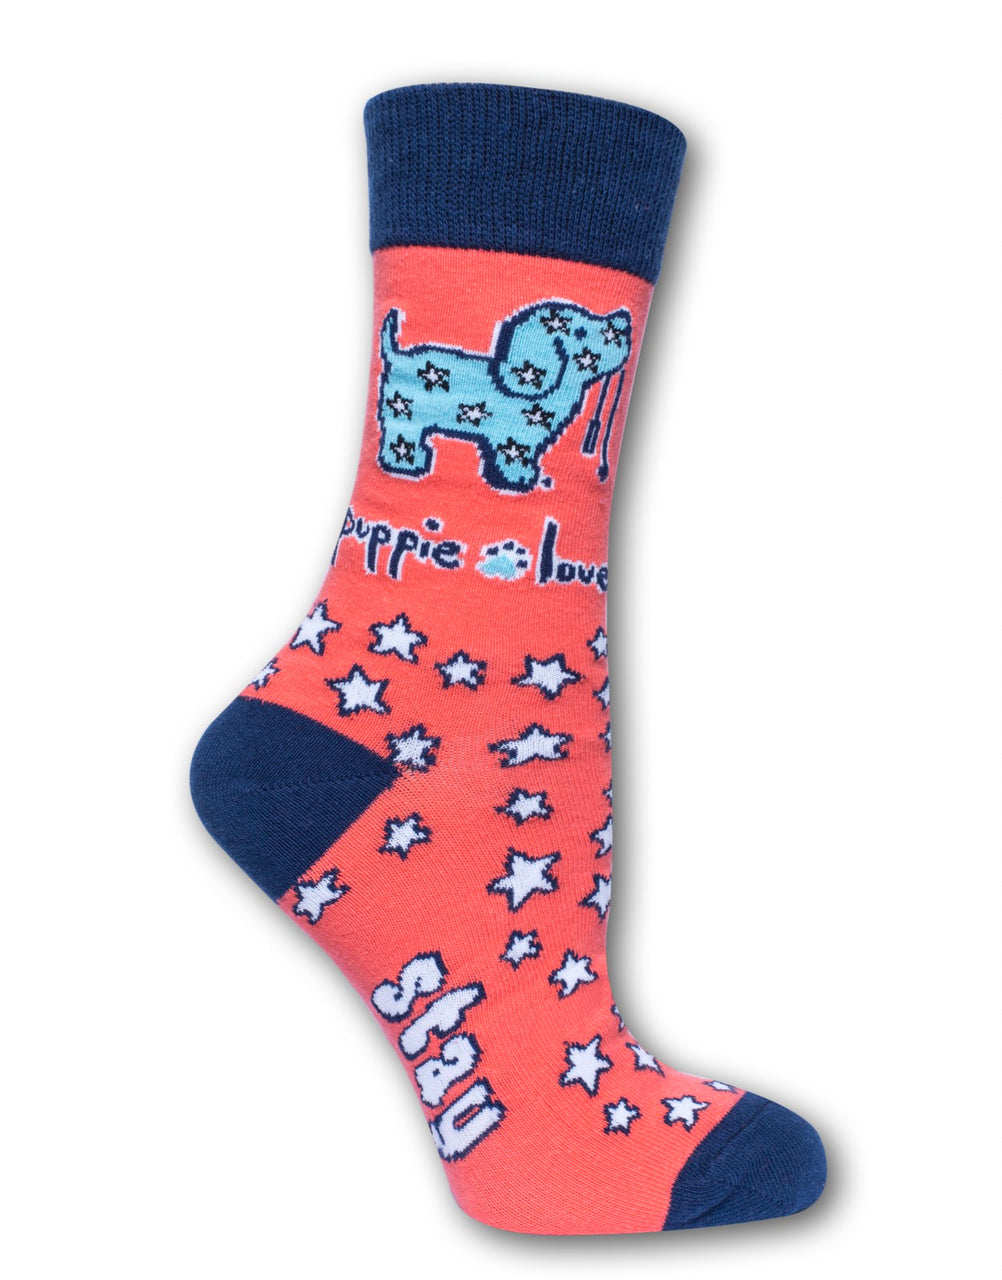 ADULT CREW SOCK, STAY PAWSITIVE PUP - Puppie Love